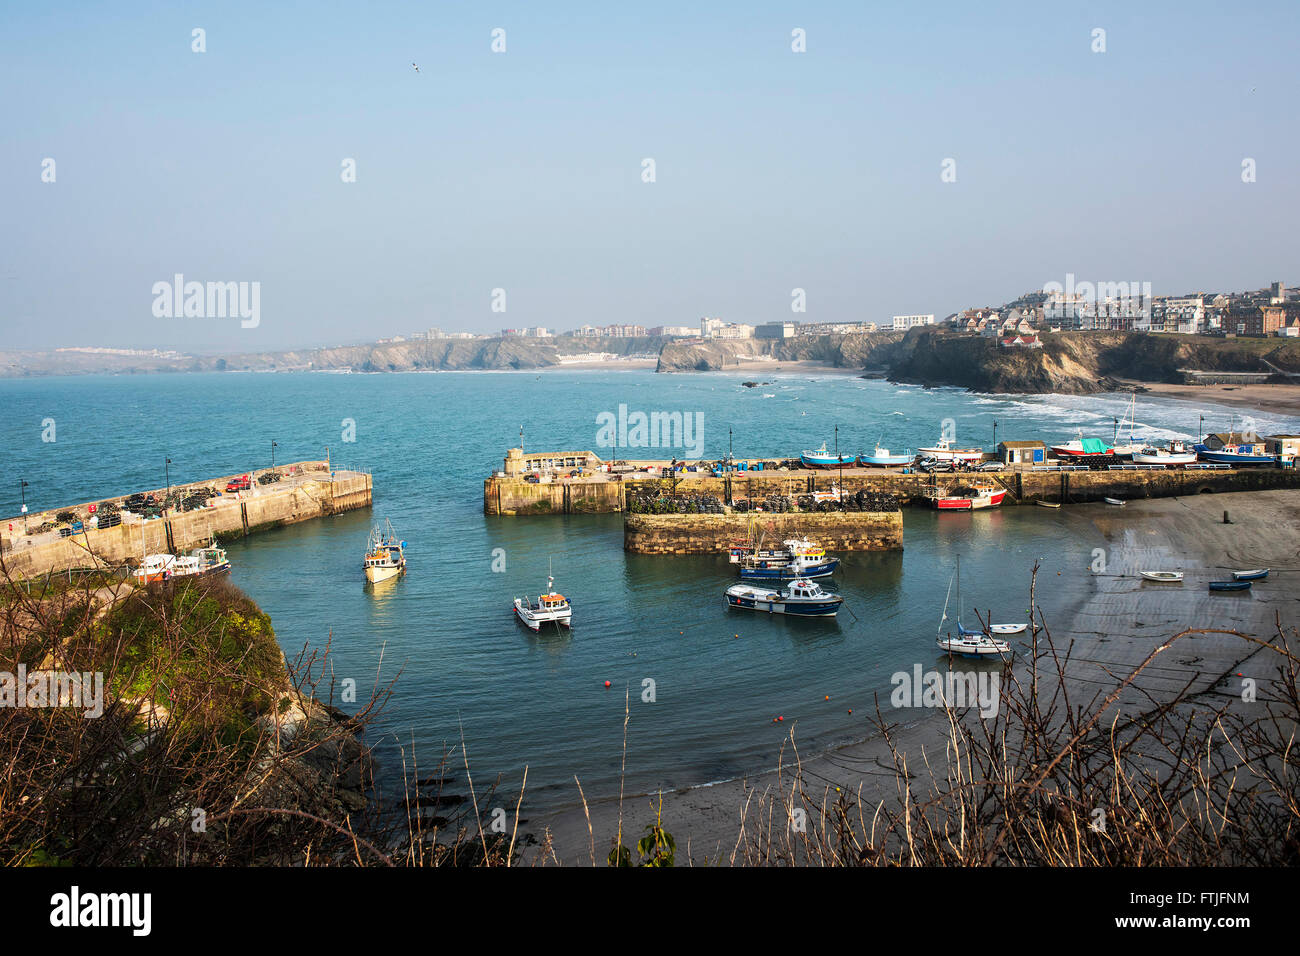 Newquay harbour harbor  in Cornwall. - Stock Image